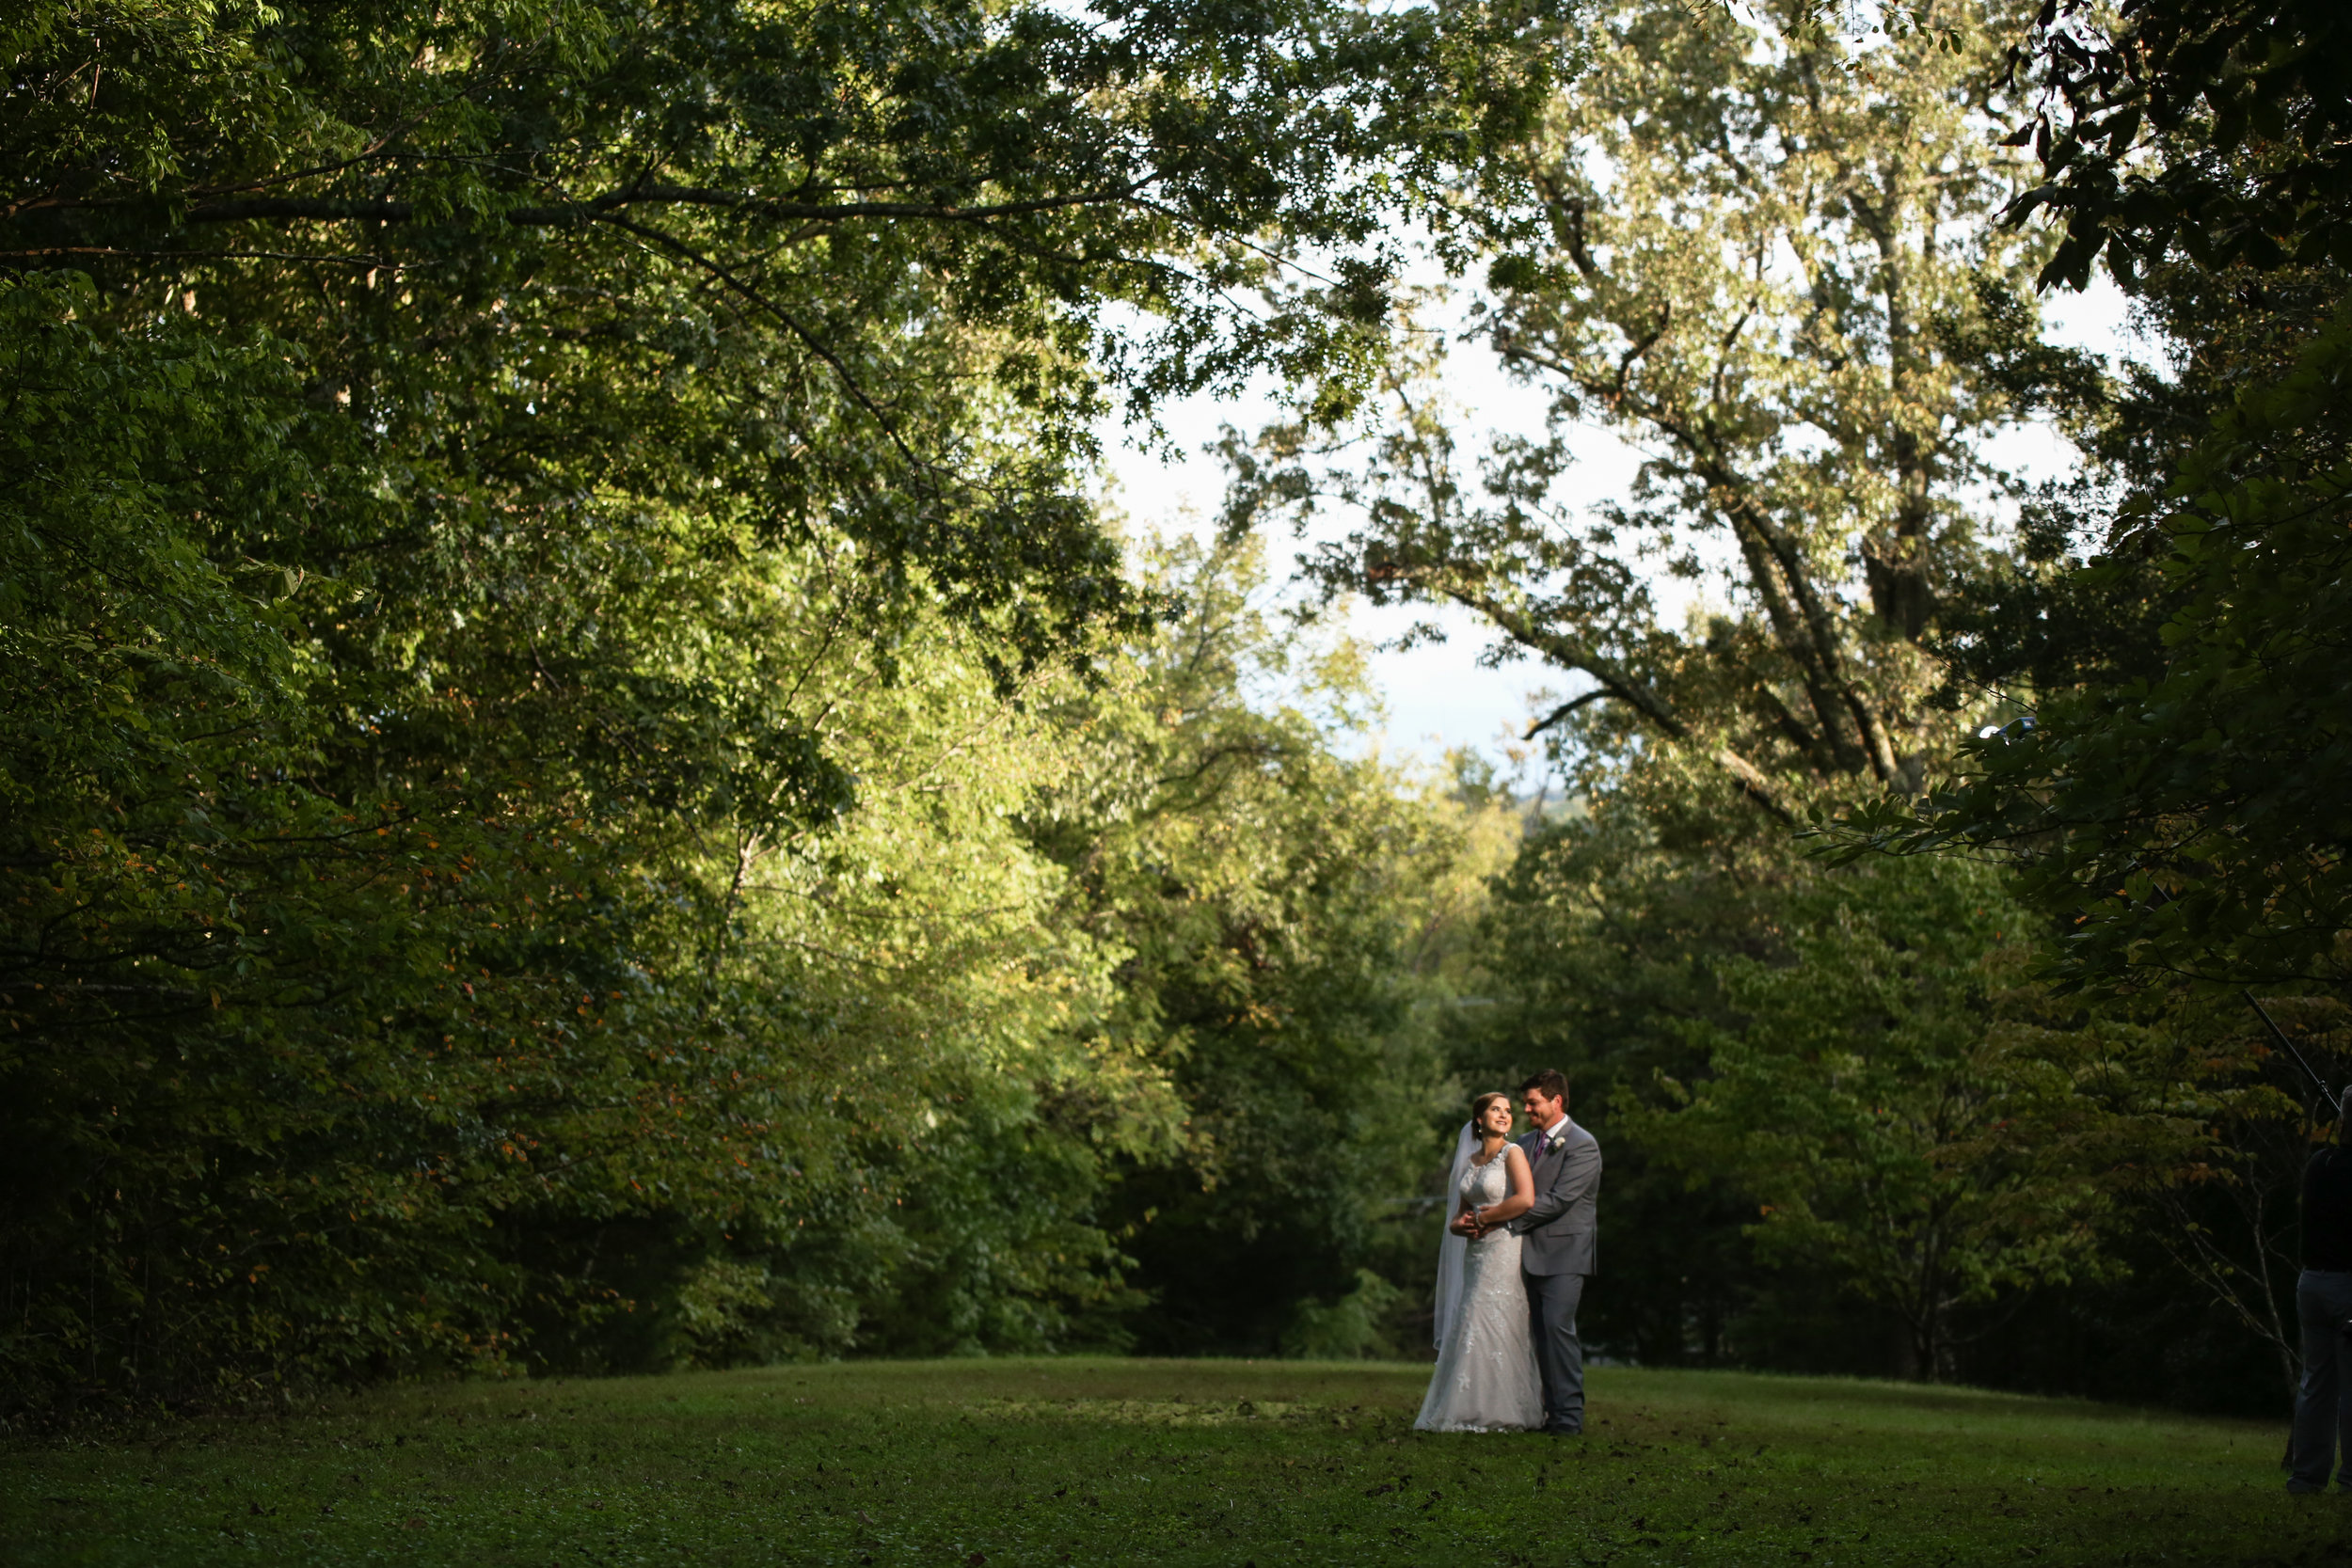 LUCY + ANDREW - Swann Plantation, Sevierville, TN